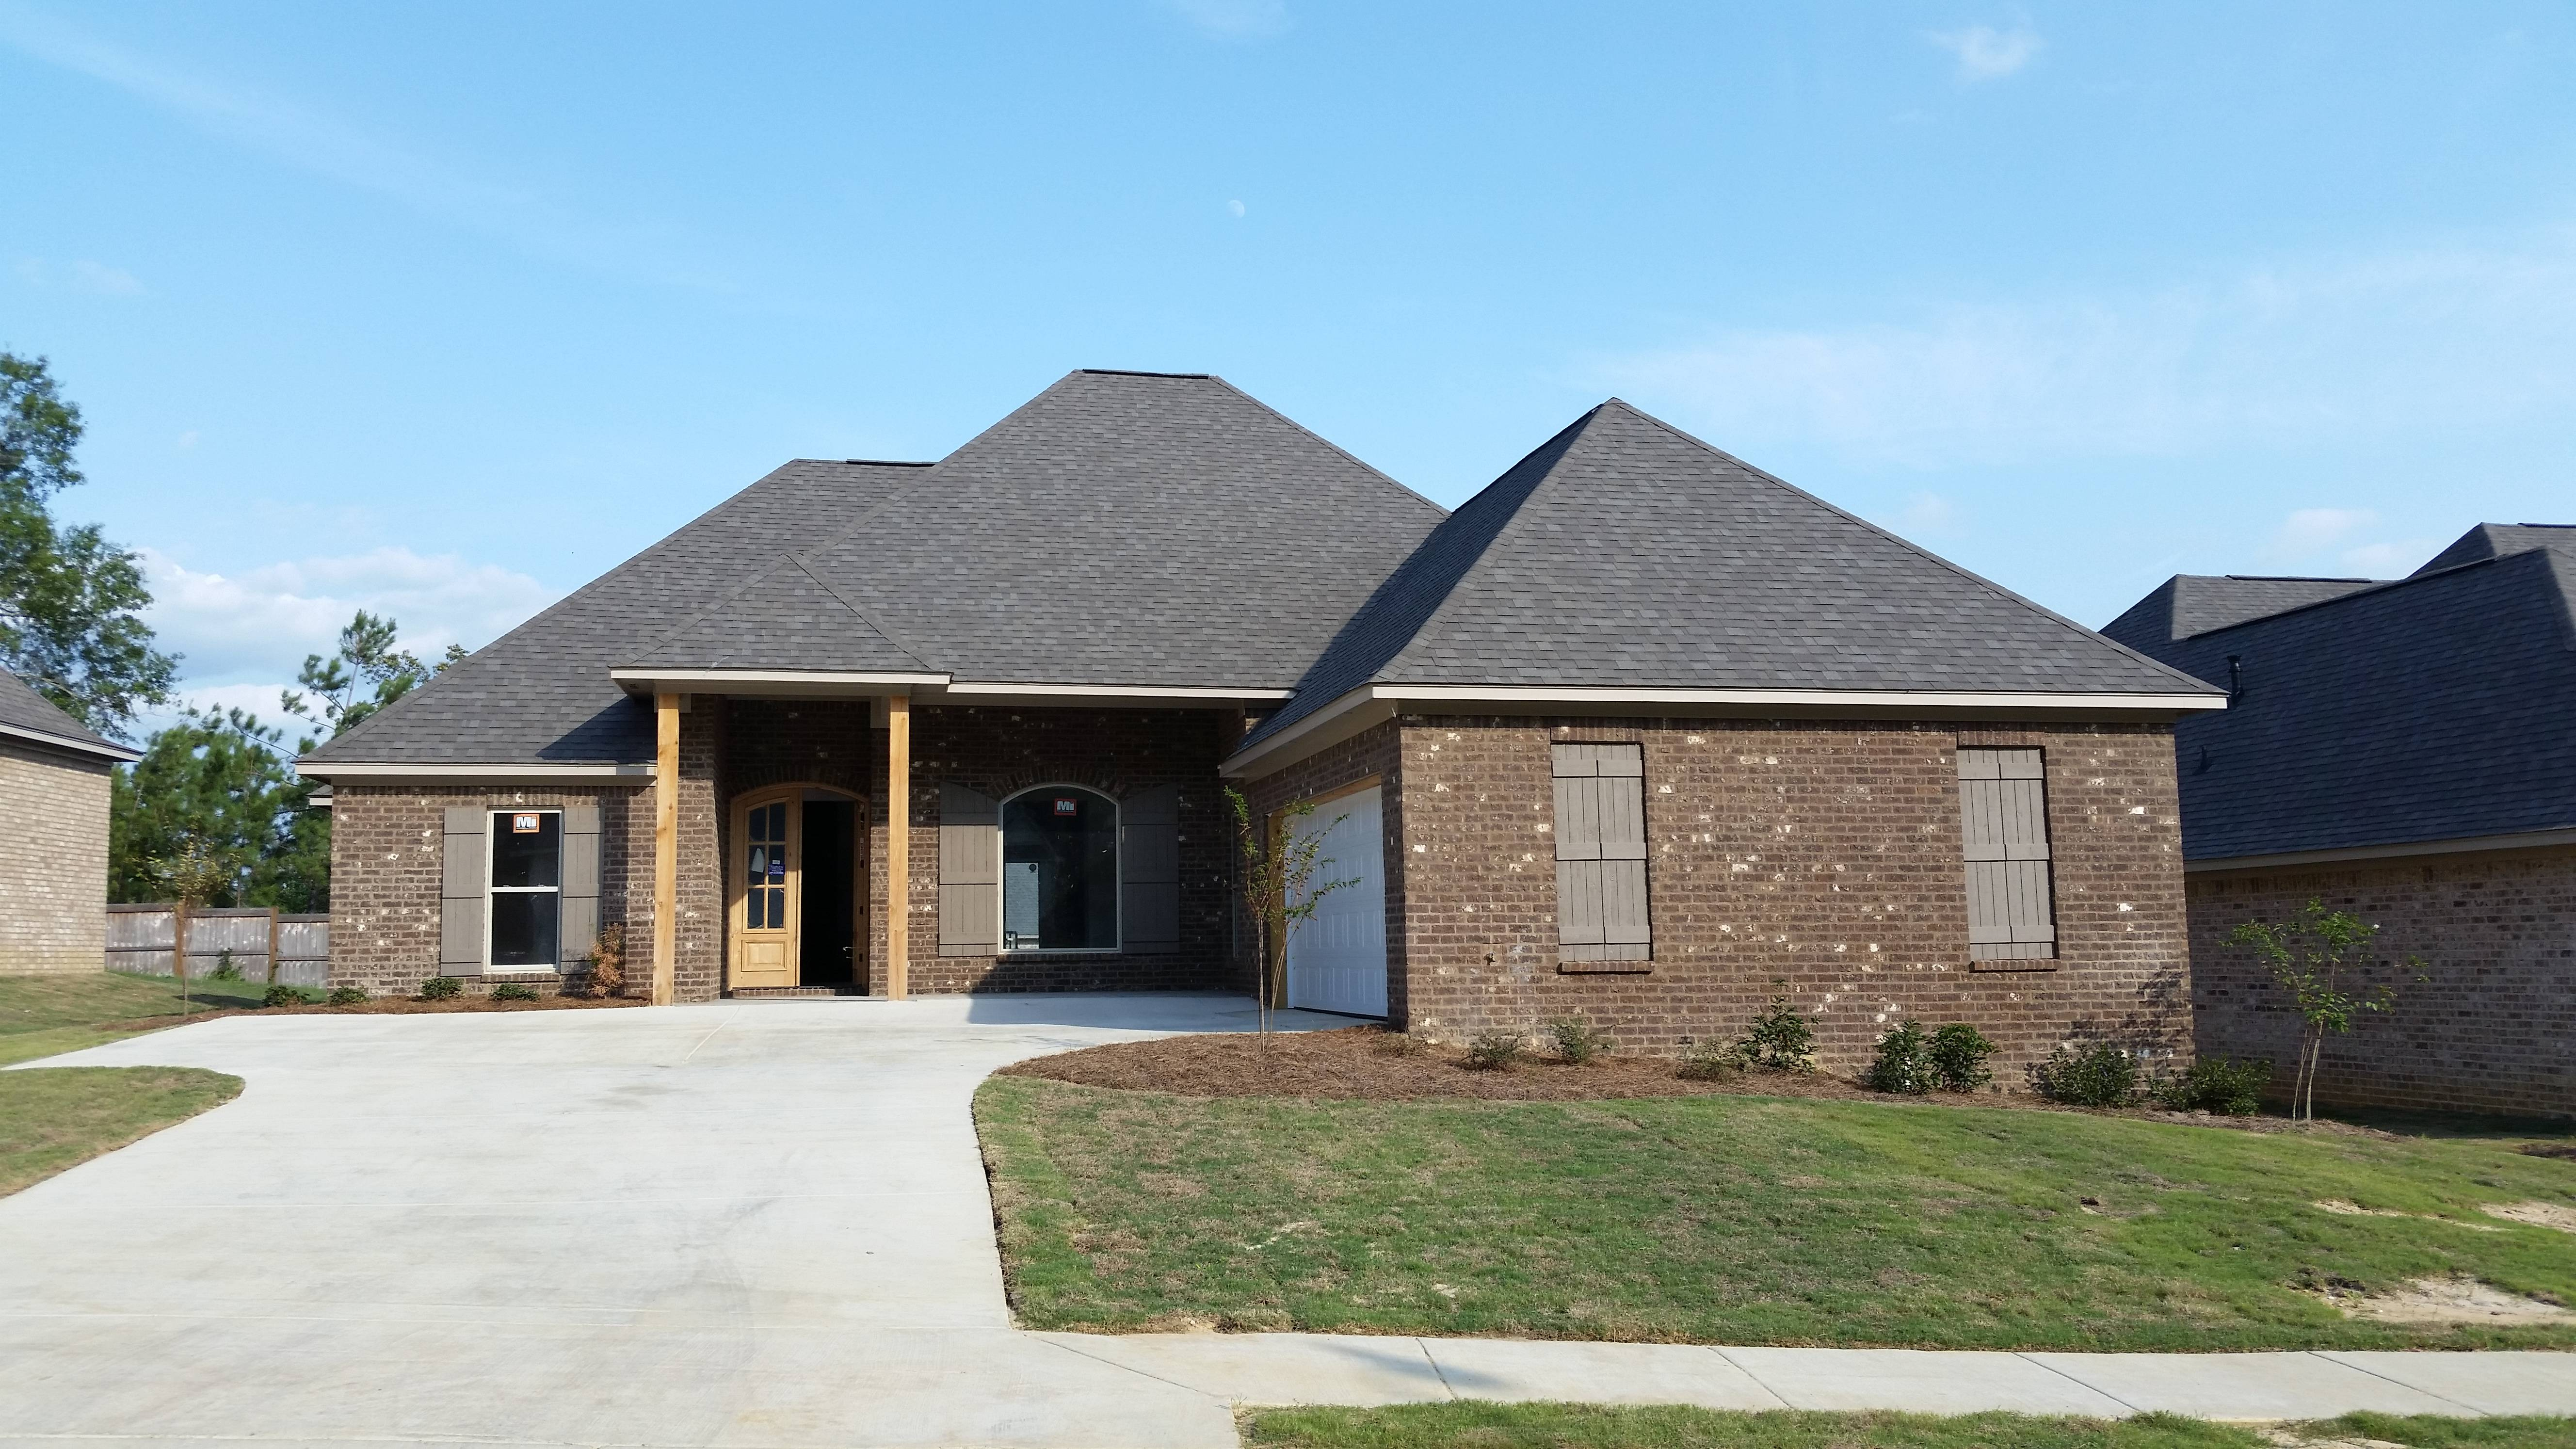 Homes for sale in scottish hills brandon ms 39047 for Usda homes for sale in ms